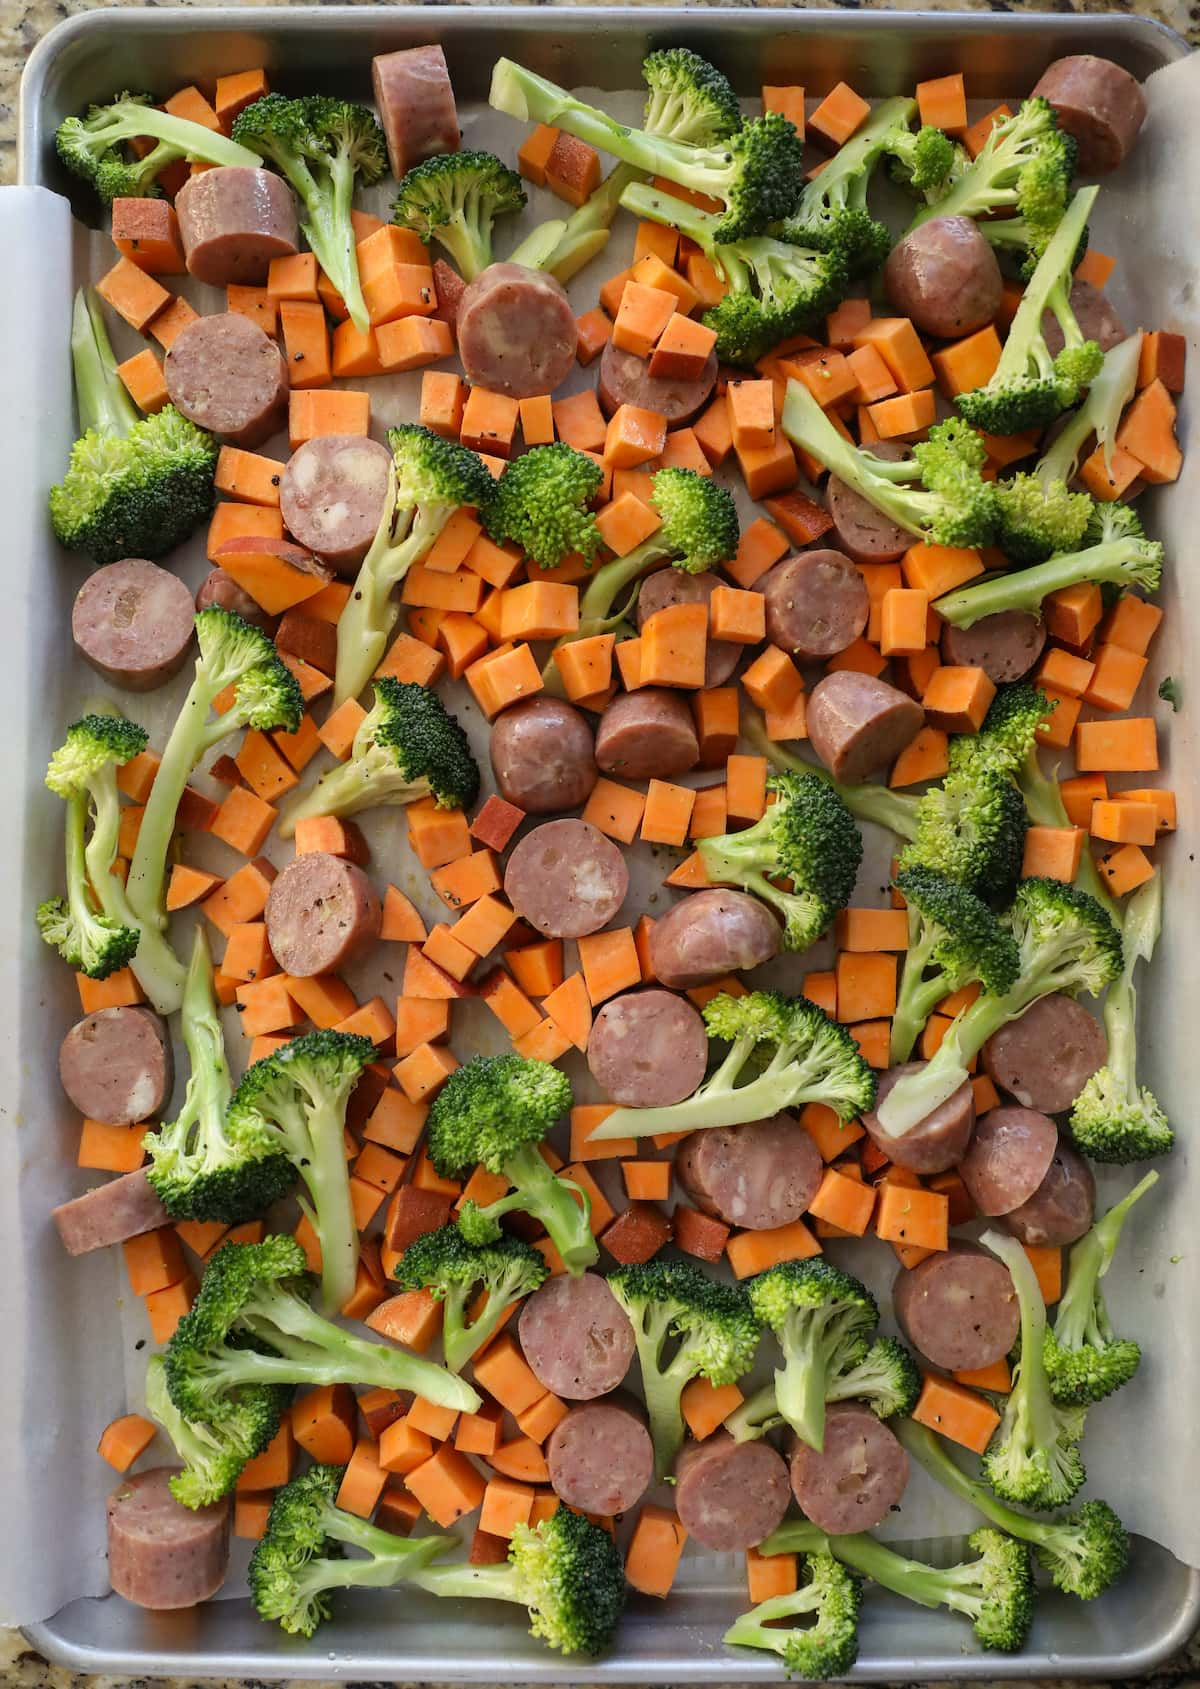 sausages and vegetables on baking sheet before roasting